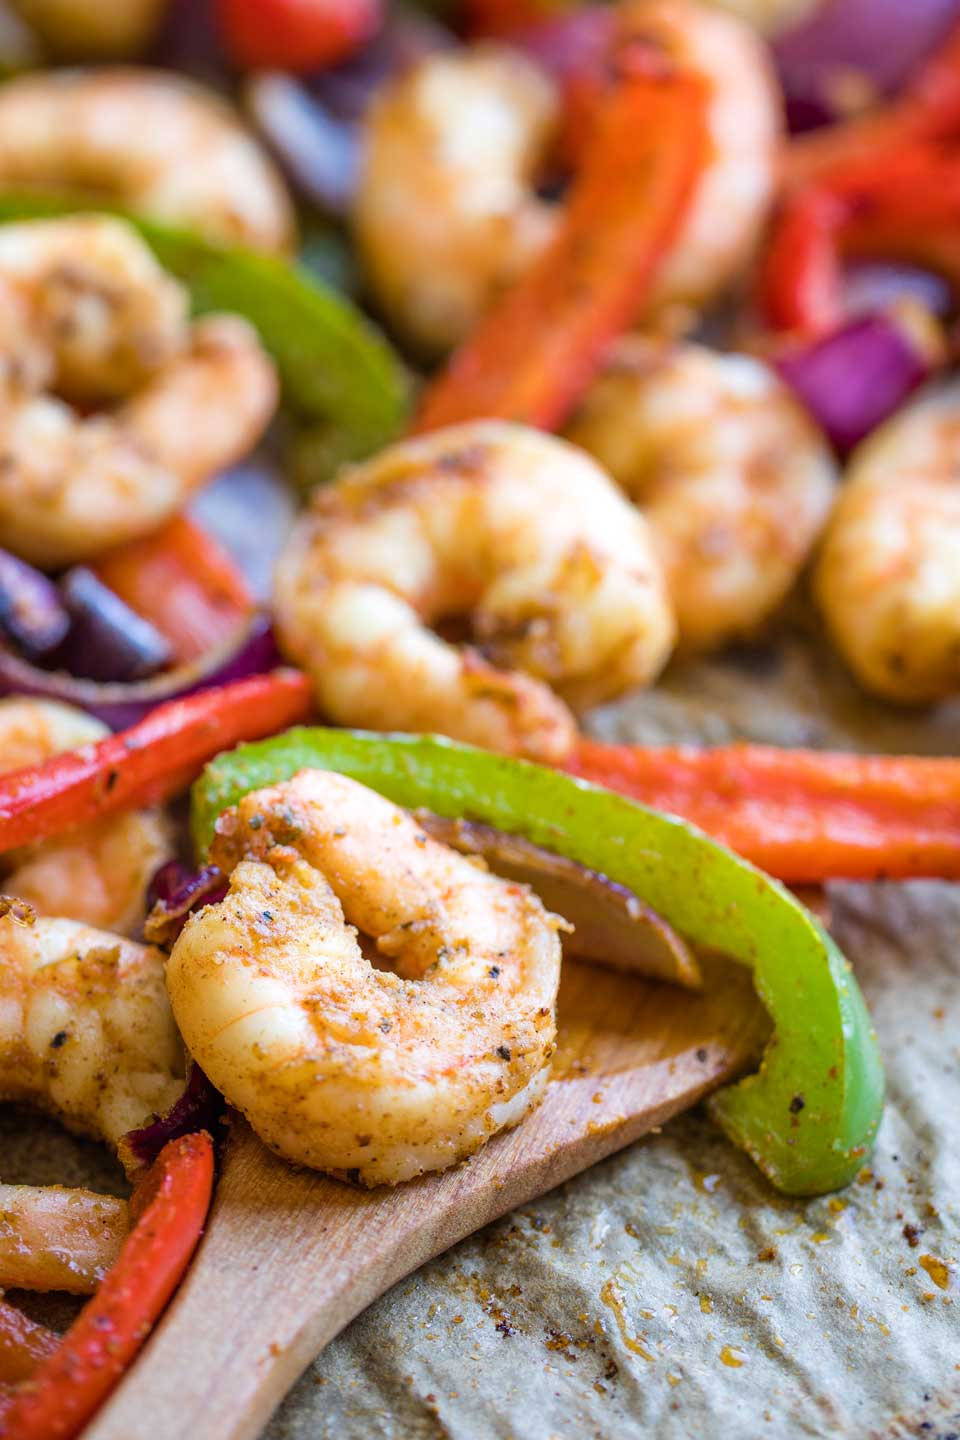 Closeup of a shrimp and pepper, still on the sheet pan and being scooped up by a wooden spoon to make fajitas.